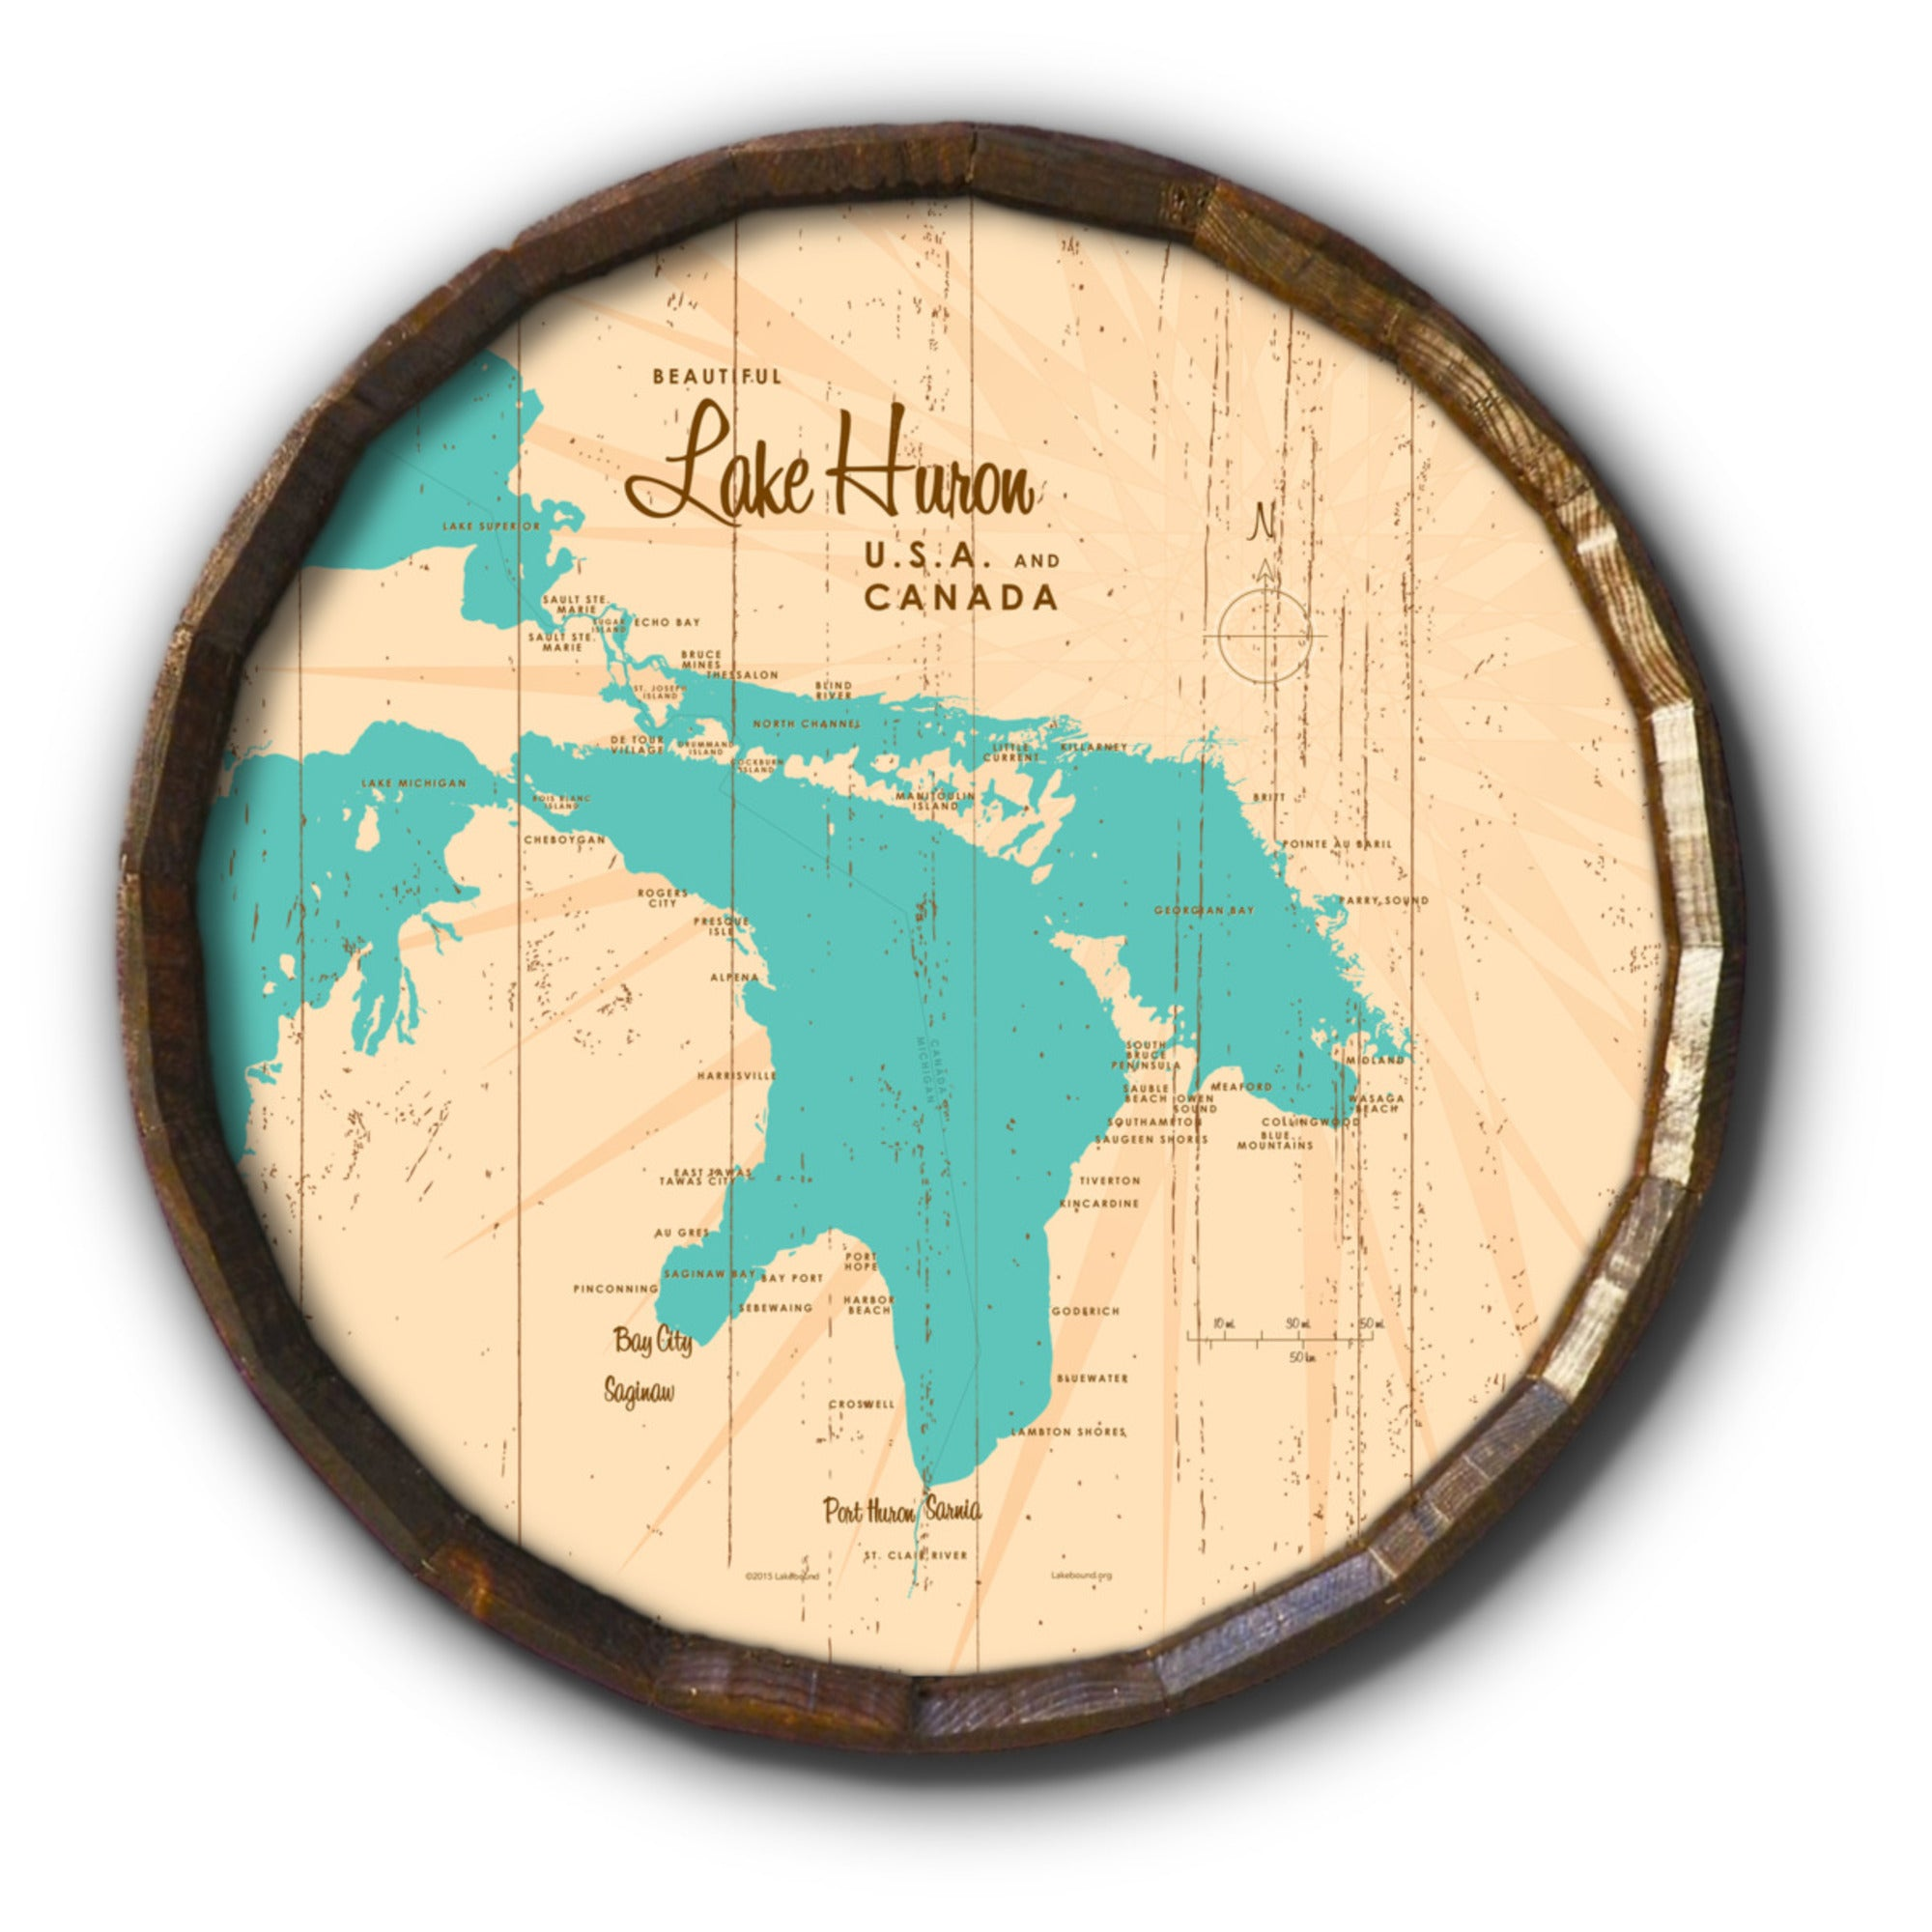 Lake Huron Michigan, Rustic Barrel End Map Art